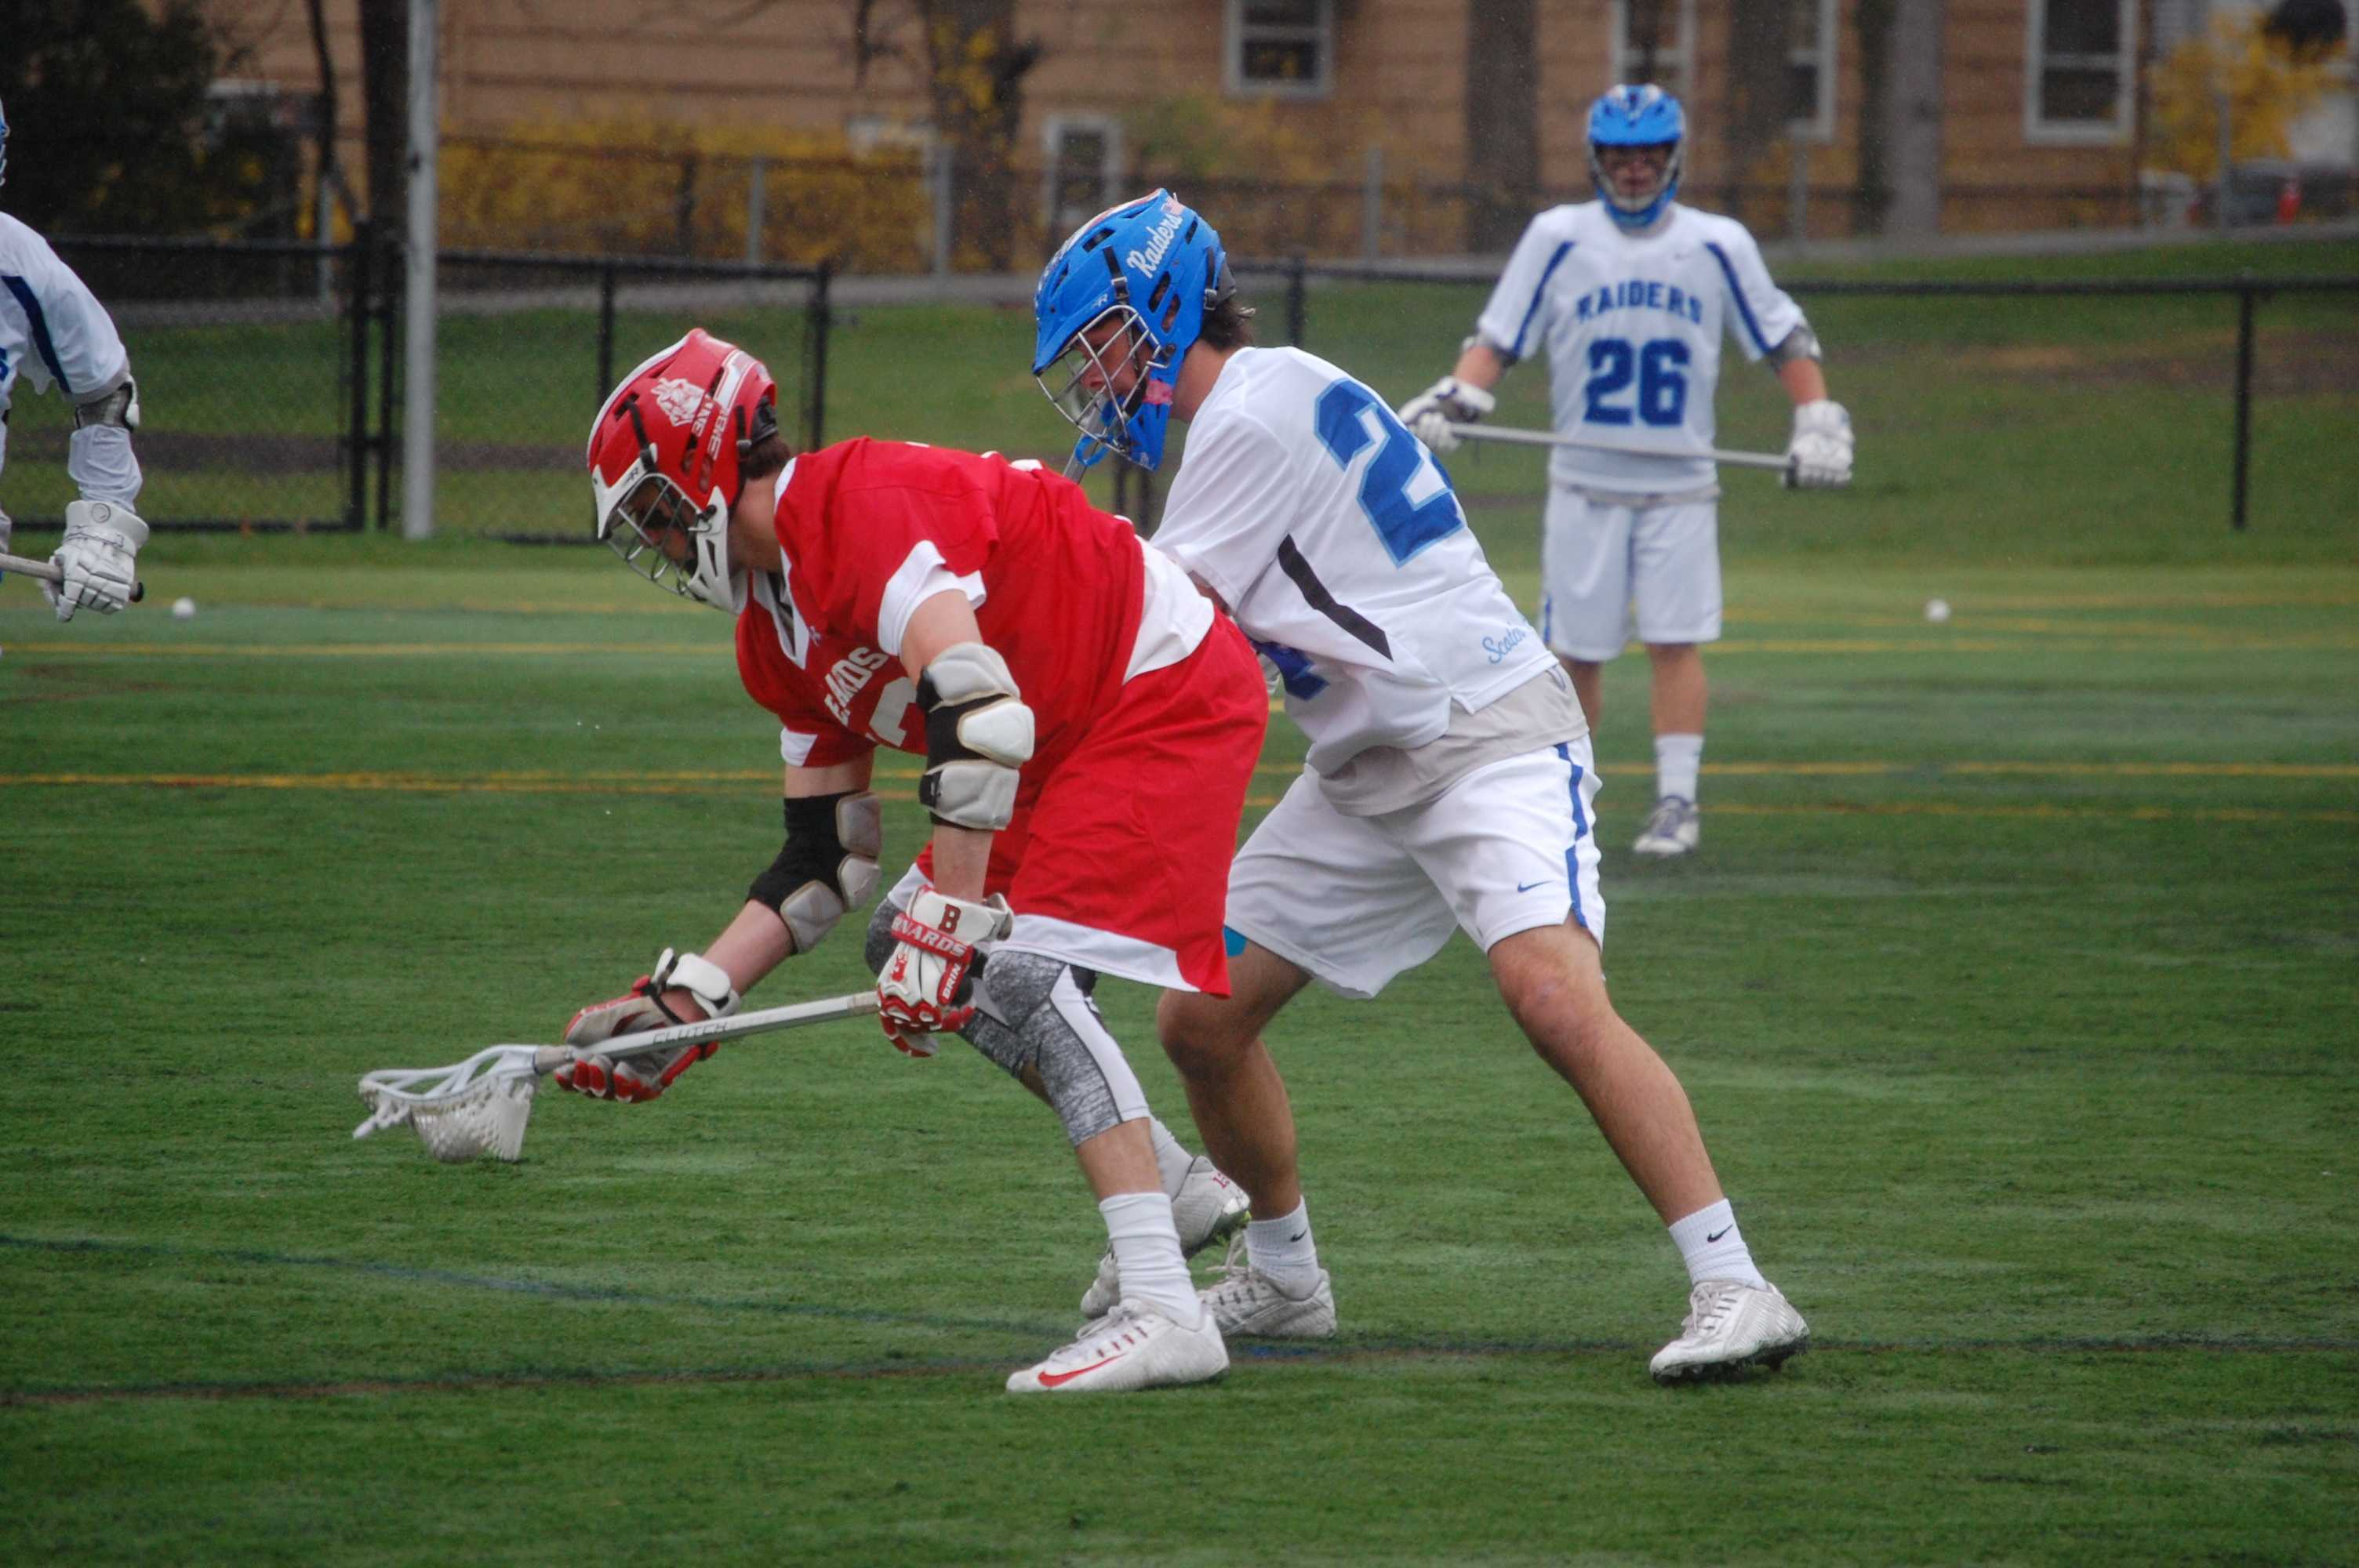 Junior Richard Nardone tries to get a groundball against a Mountaineer